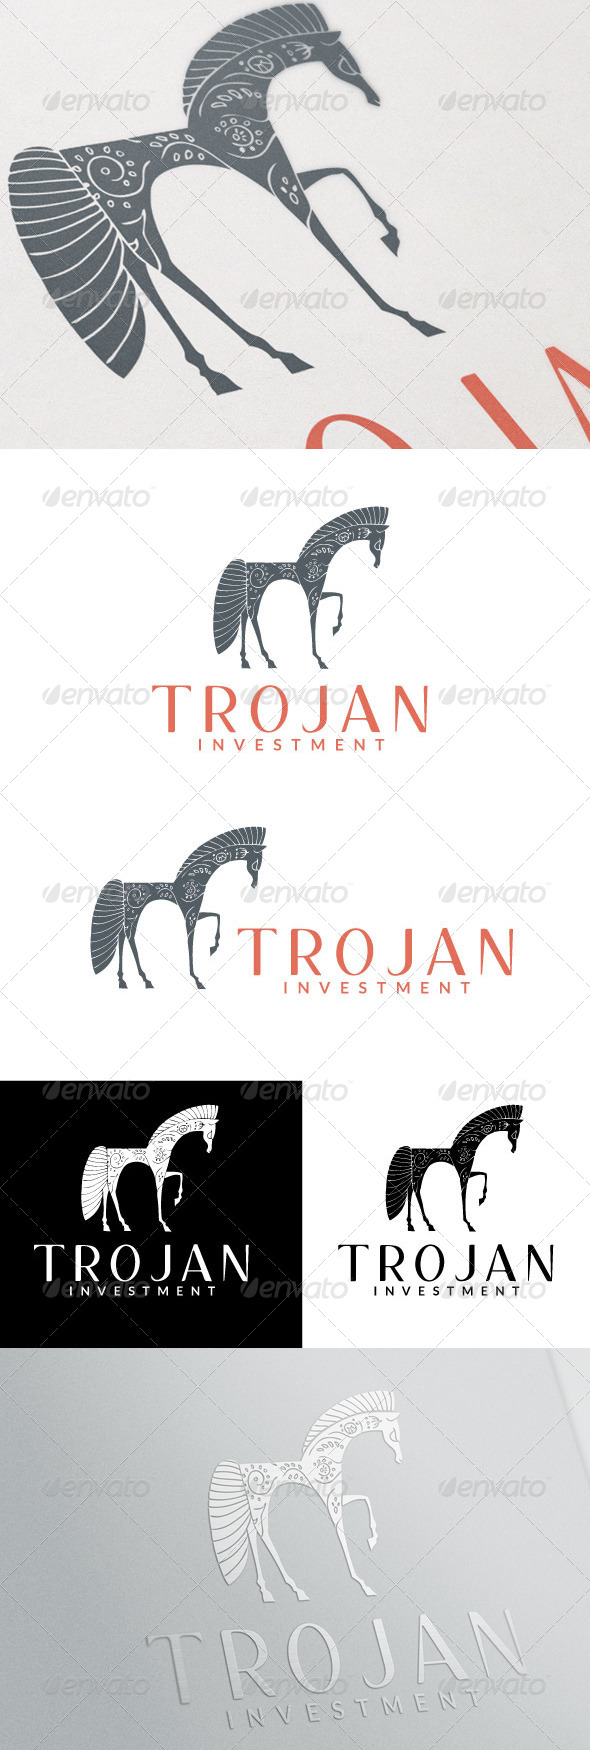 GraphicRiver TROJAN 6949522